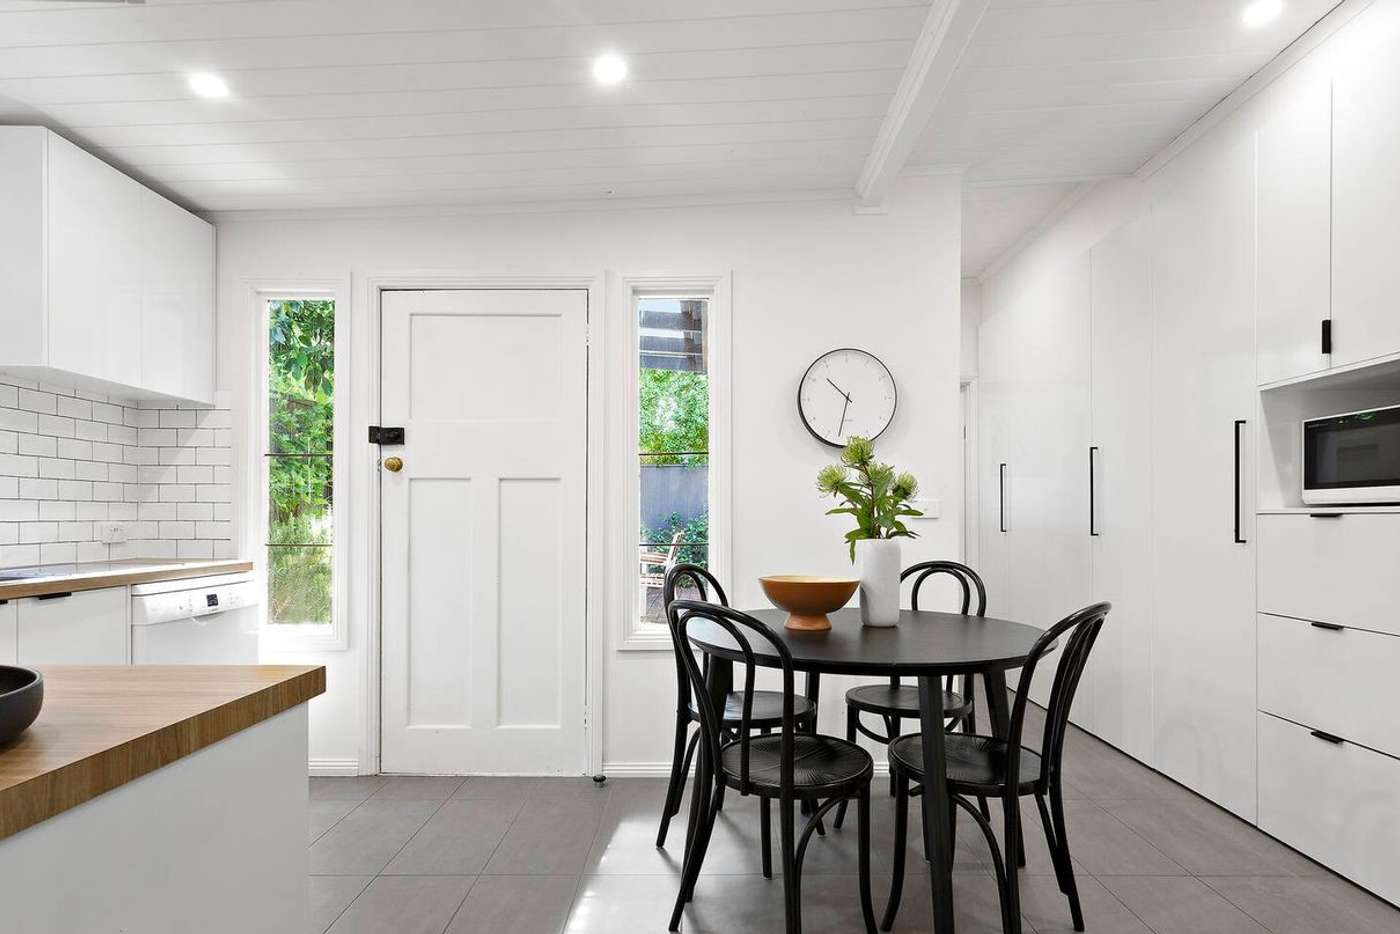 Fifth view of Homely house listing, 46 LORD STREET, Richmond VIC 3121